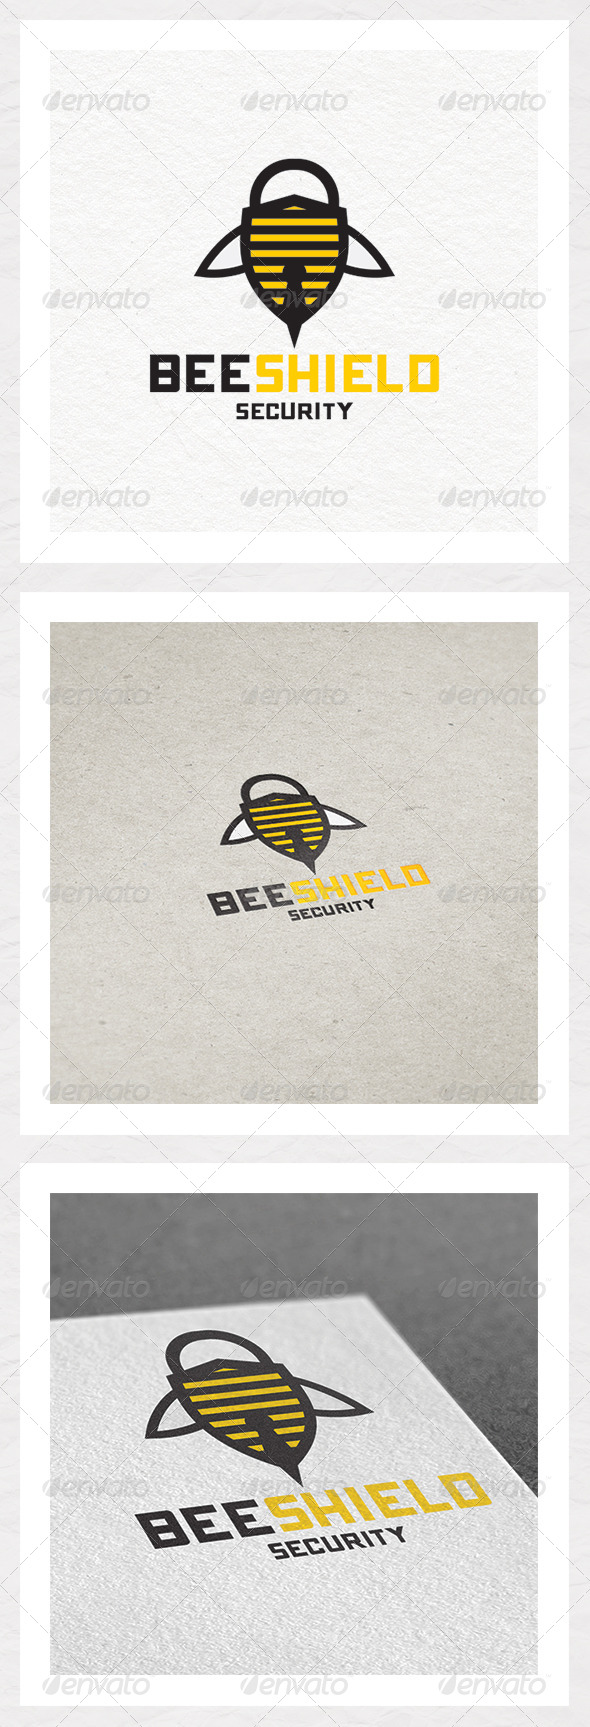 Bee Shield Security Logo Design